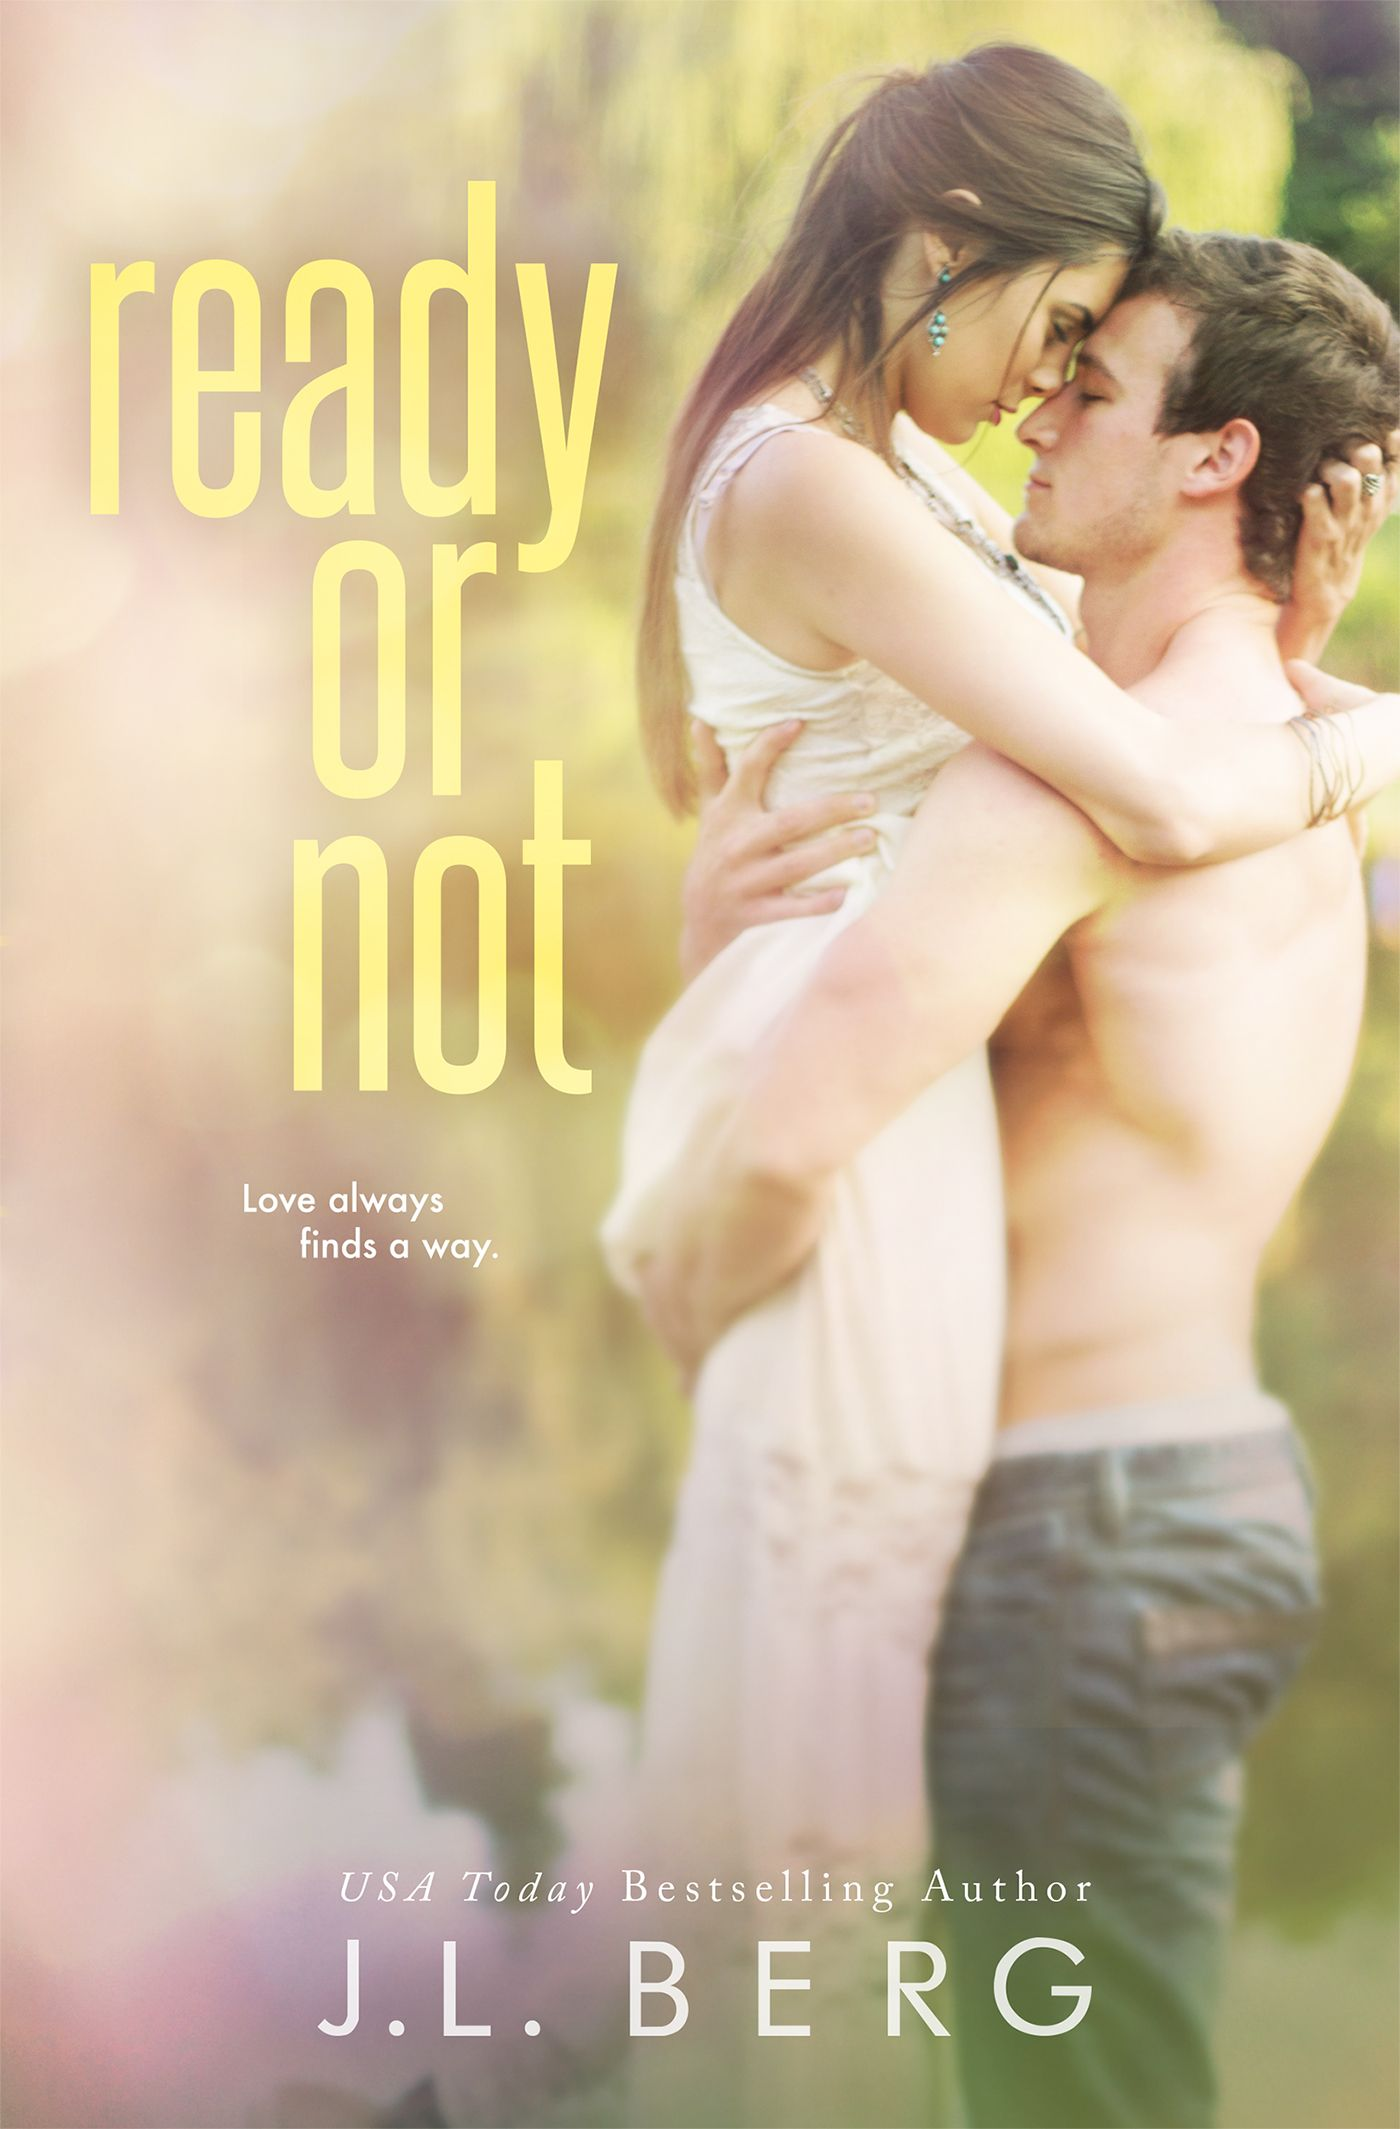 ✵✵✵COVER REVEAL: READY OR NOT BY J.L BERG✵✵✵